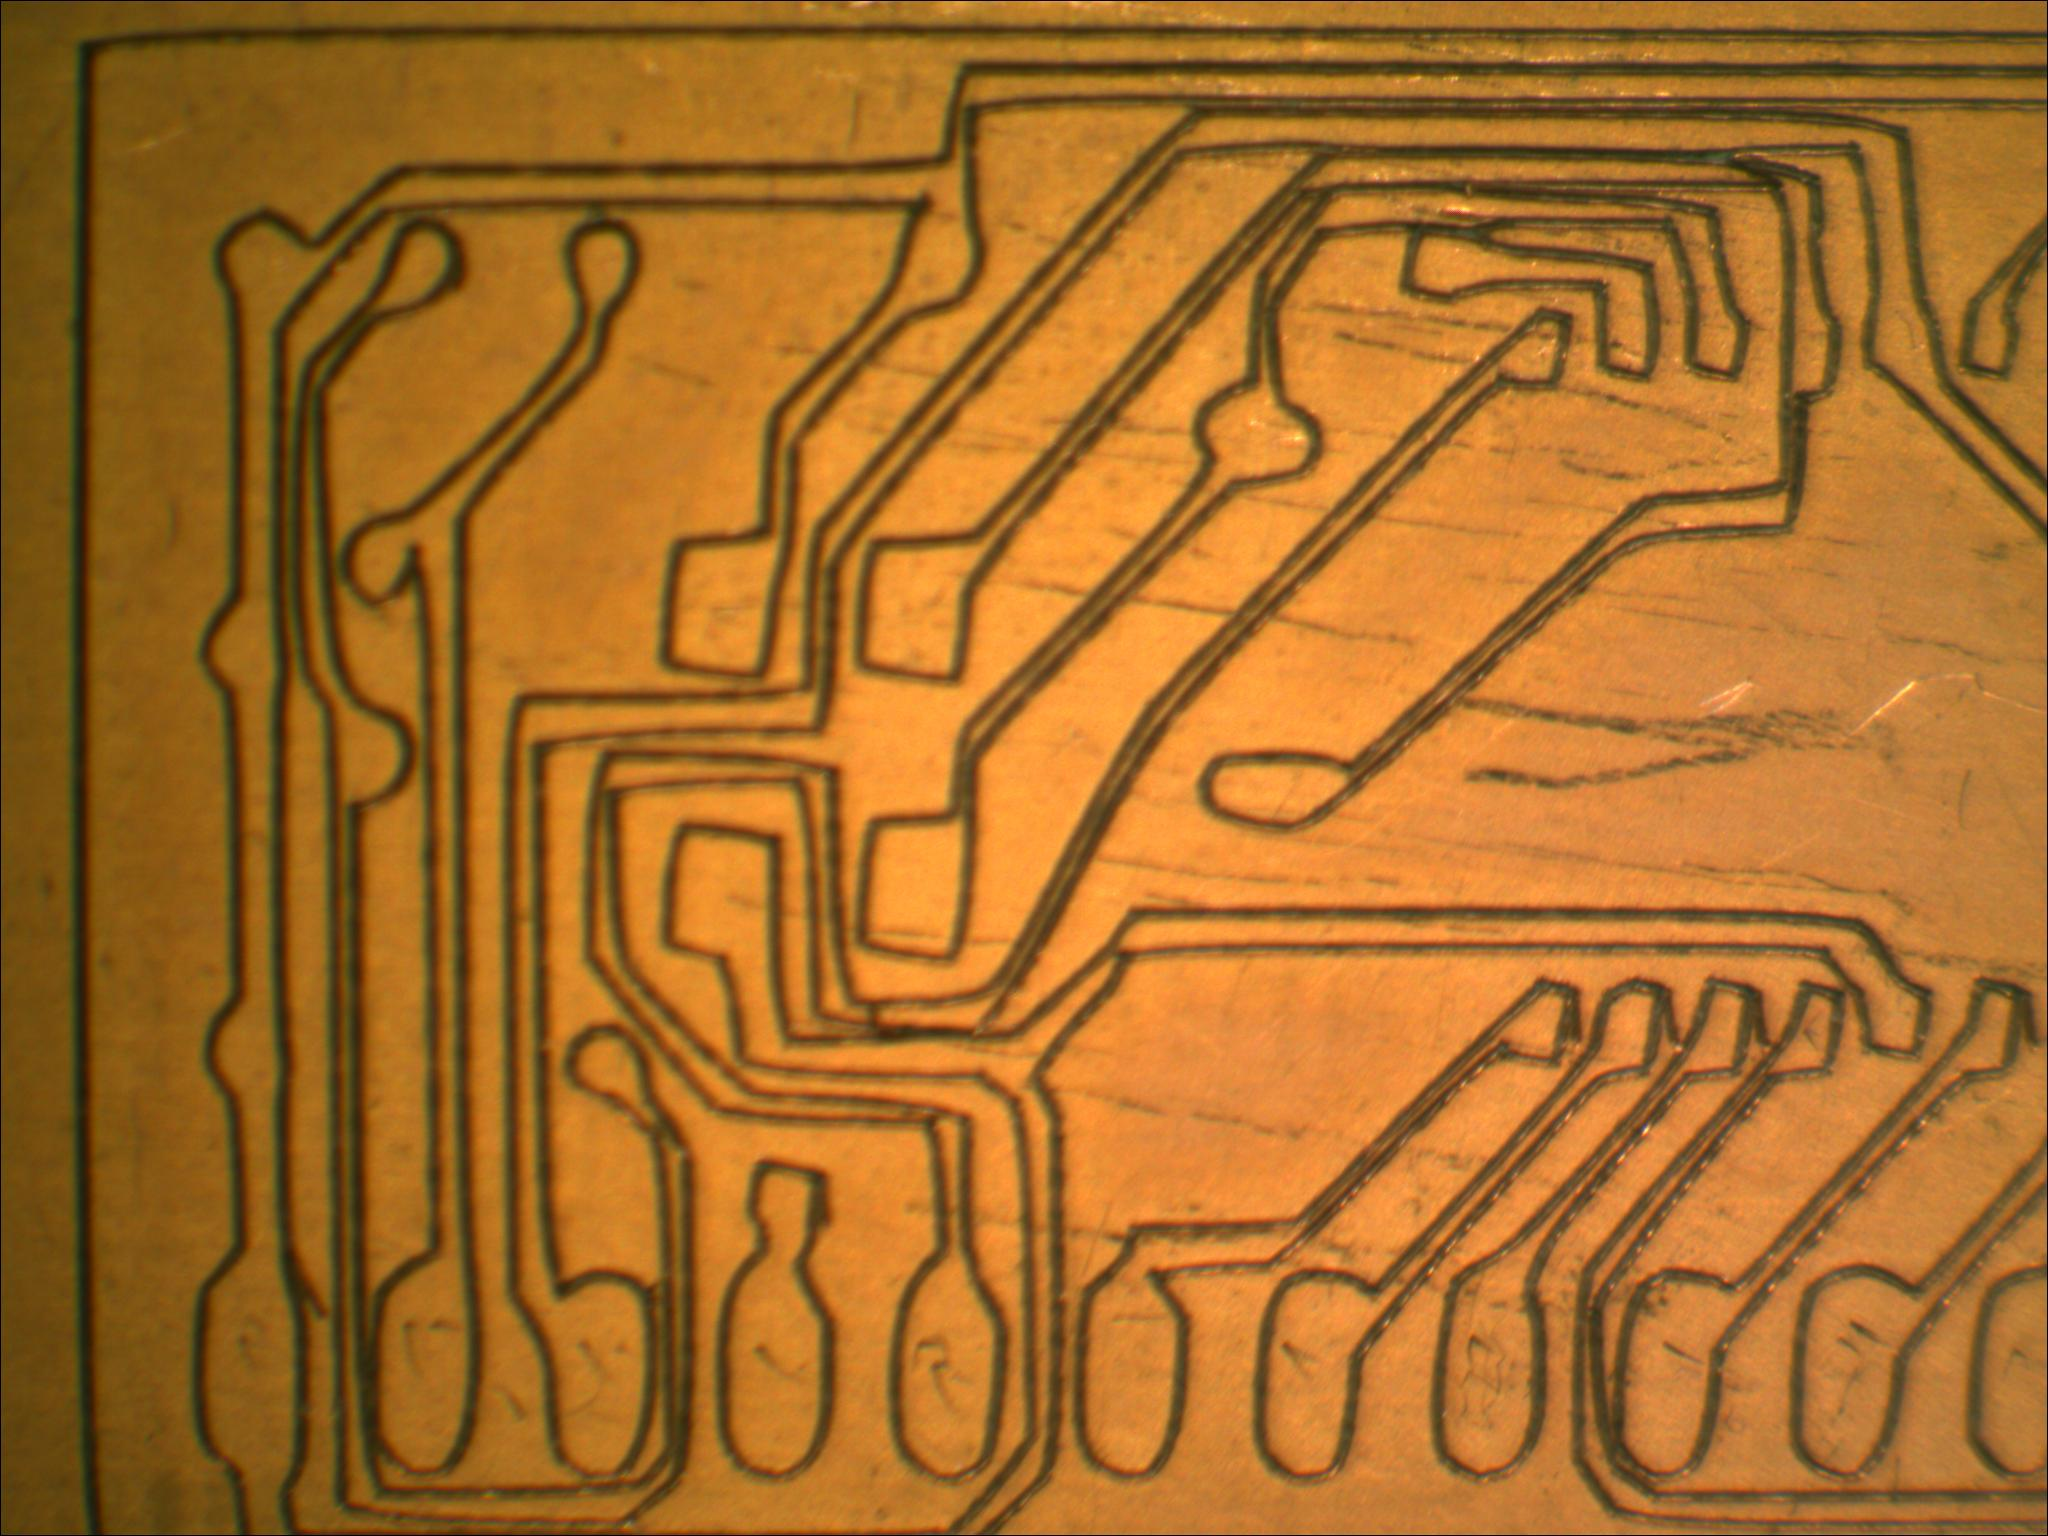 Quick Printed Circuit Boards Microsoft Research Photo Resist Method Of Etching A Board Youtube I Believe This Is Result Combination The Trace Function In Paper Cutter Software Incomplete Compensation Or